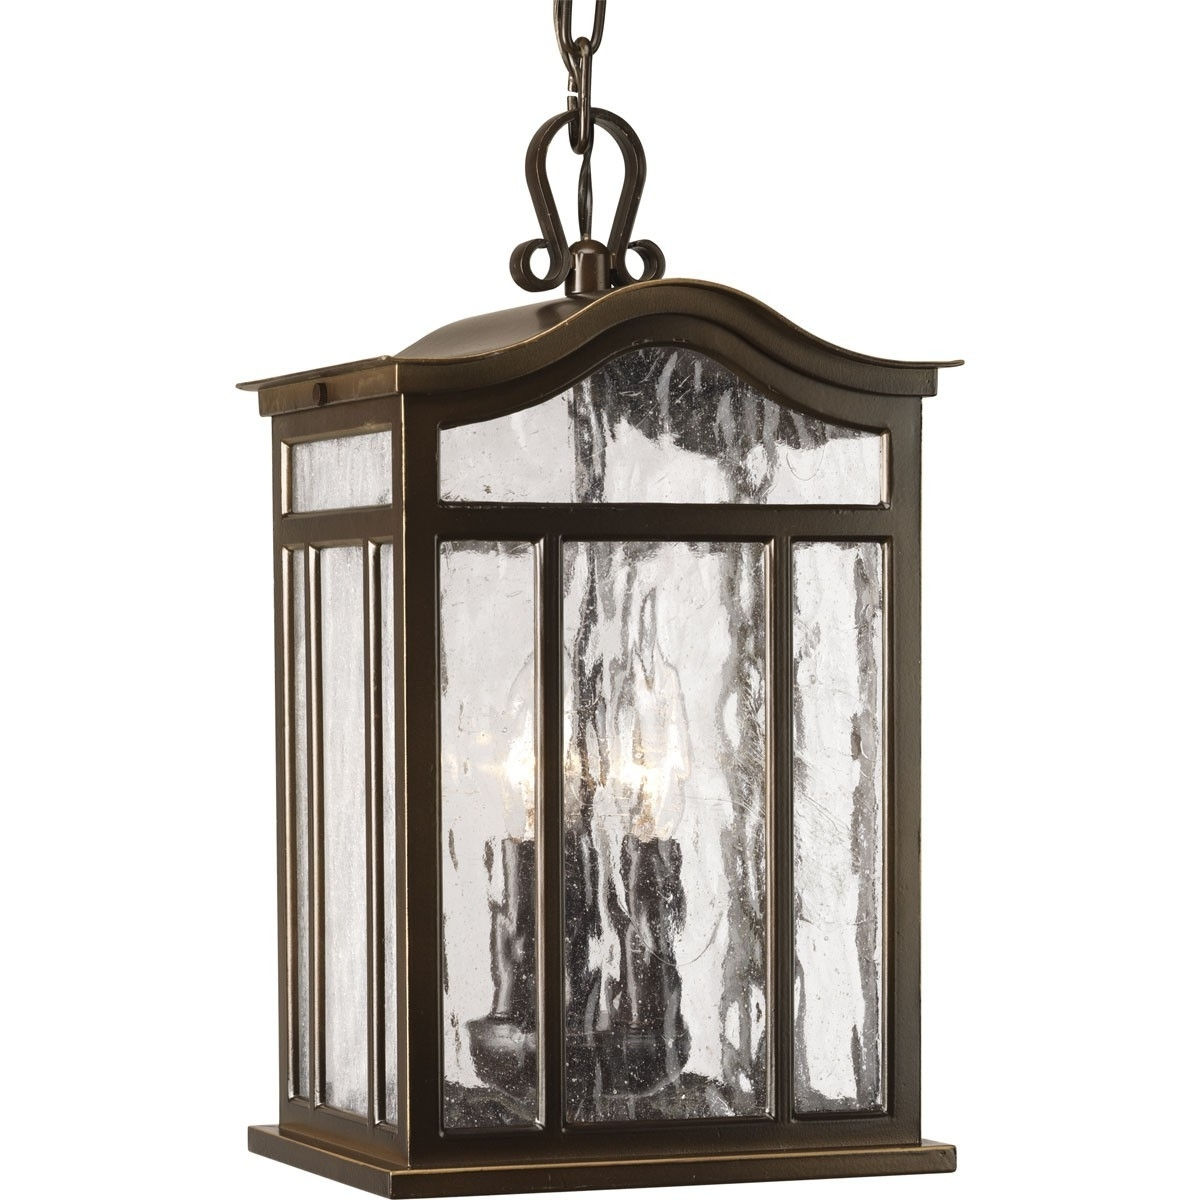 Stunning Large Outdoor Hanging Chandelier 18 Exterior House Light With Widely Used Outdoor Hanging Electric Lanterns (View 20 of 20)